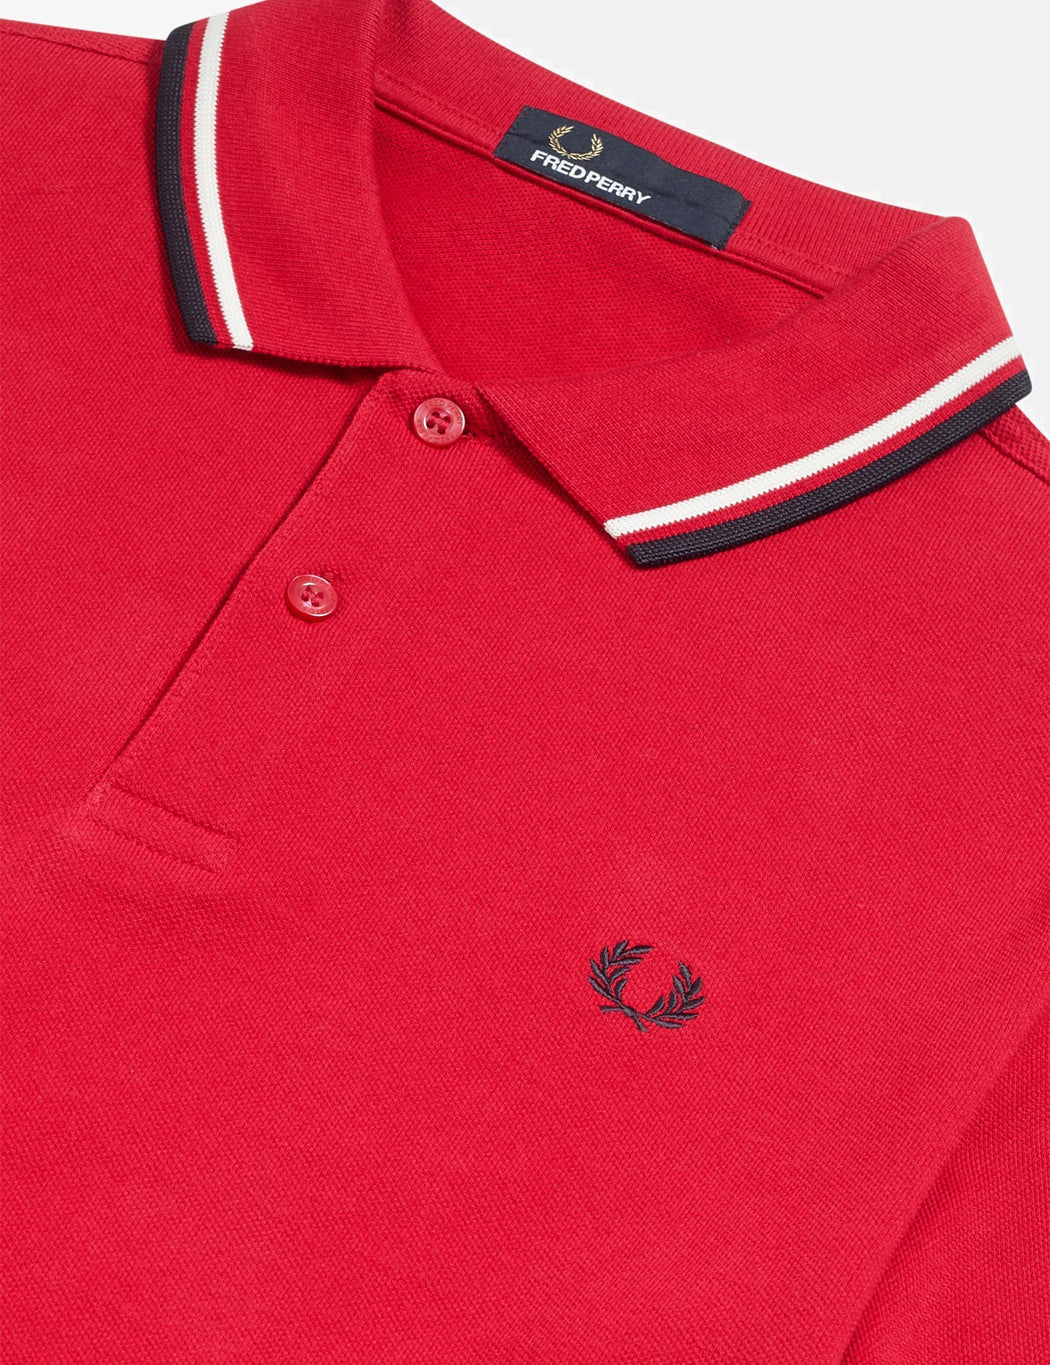 c8fa47667 Fred Perry Twin Tipped Polo Shirt - Winter Red/Snow White/Navy